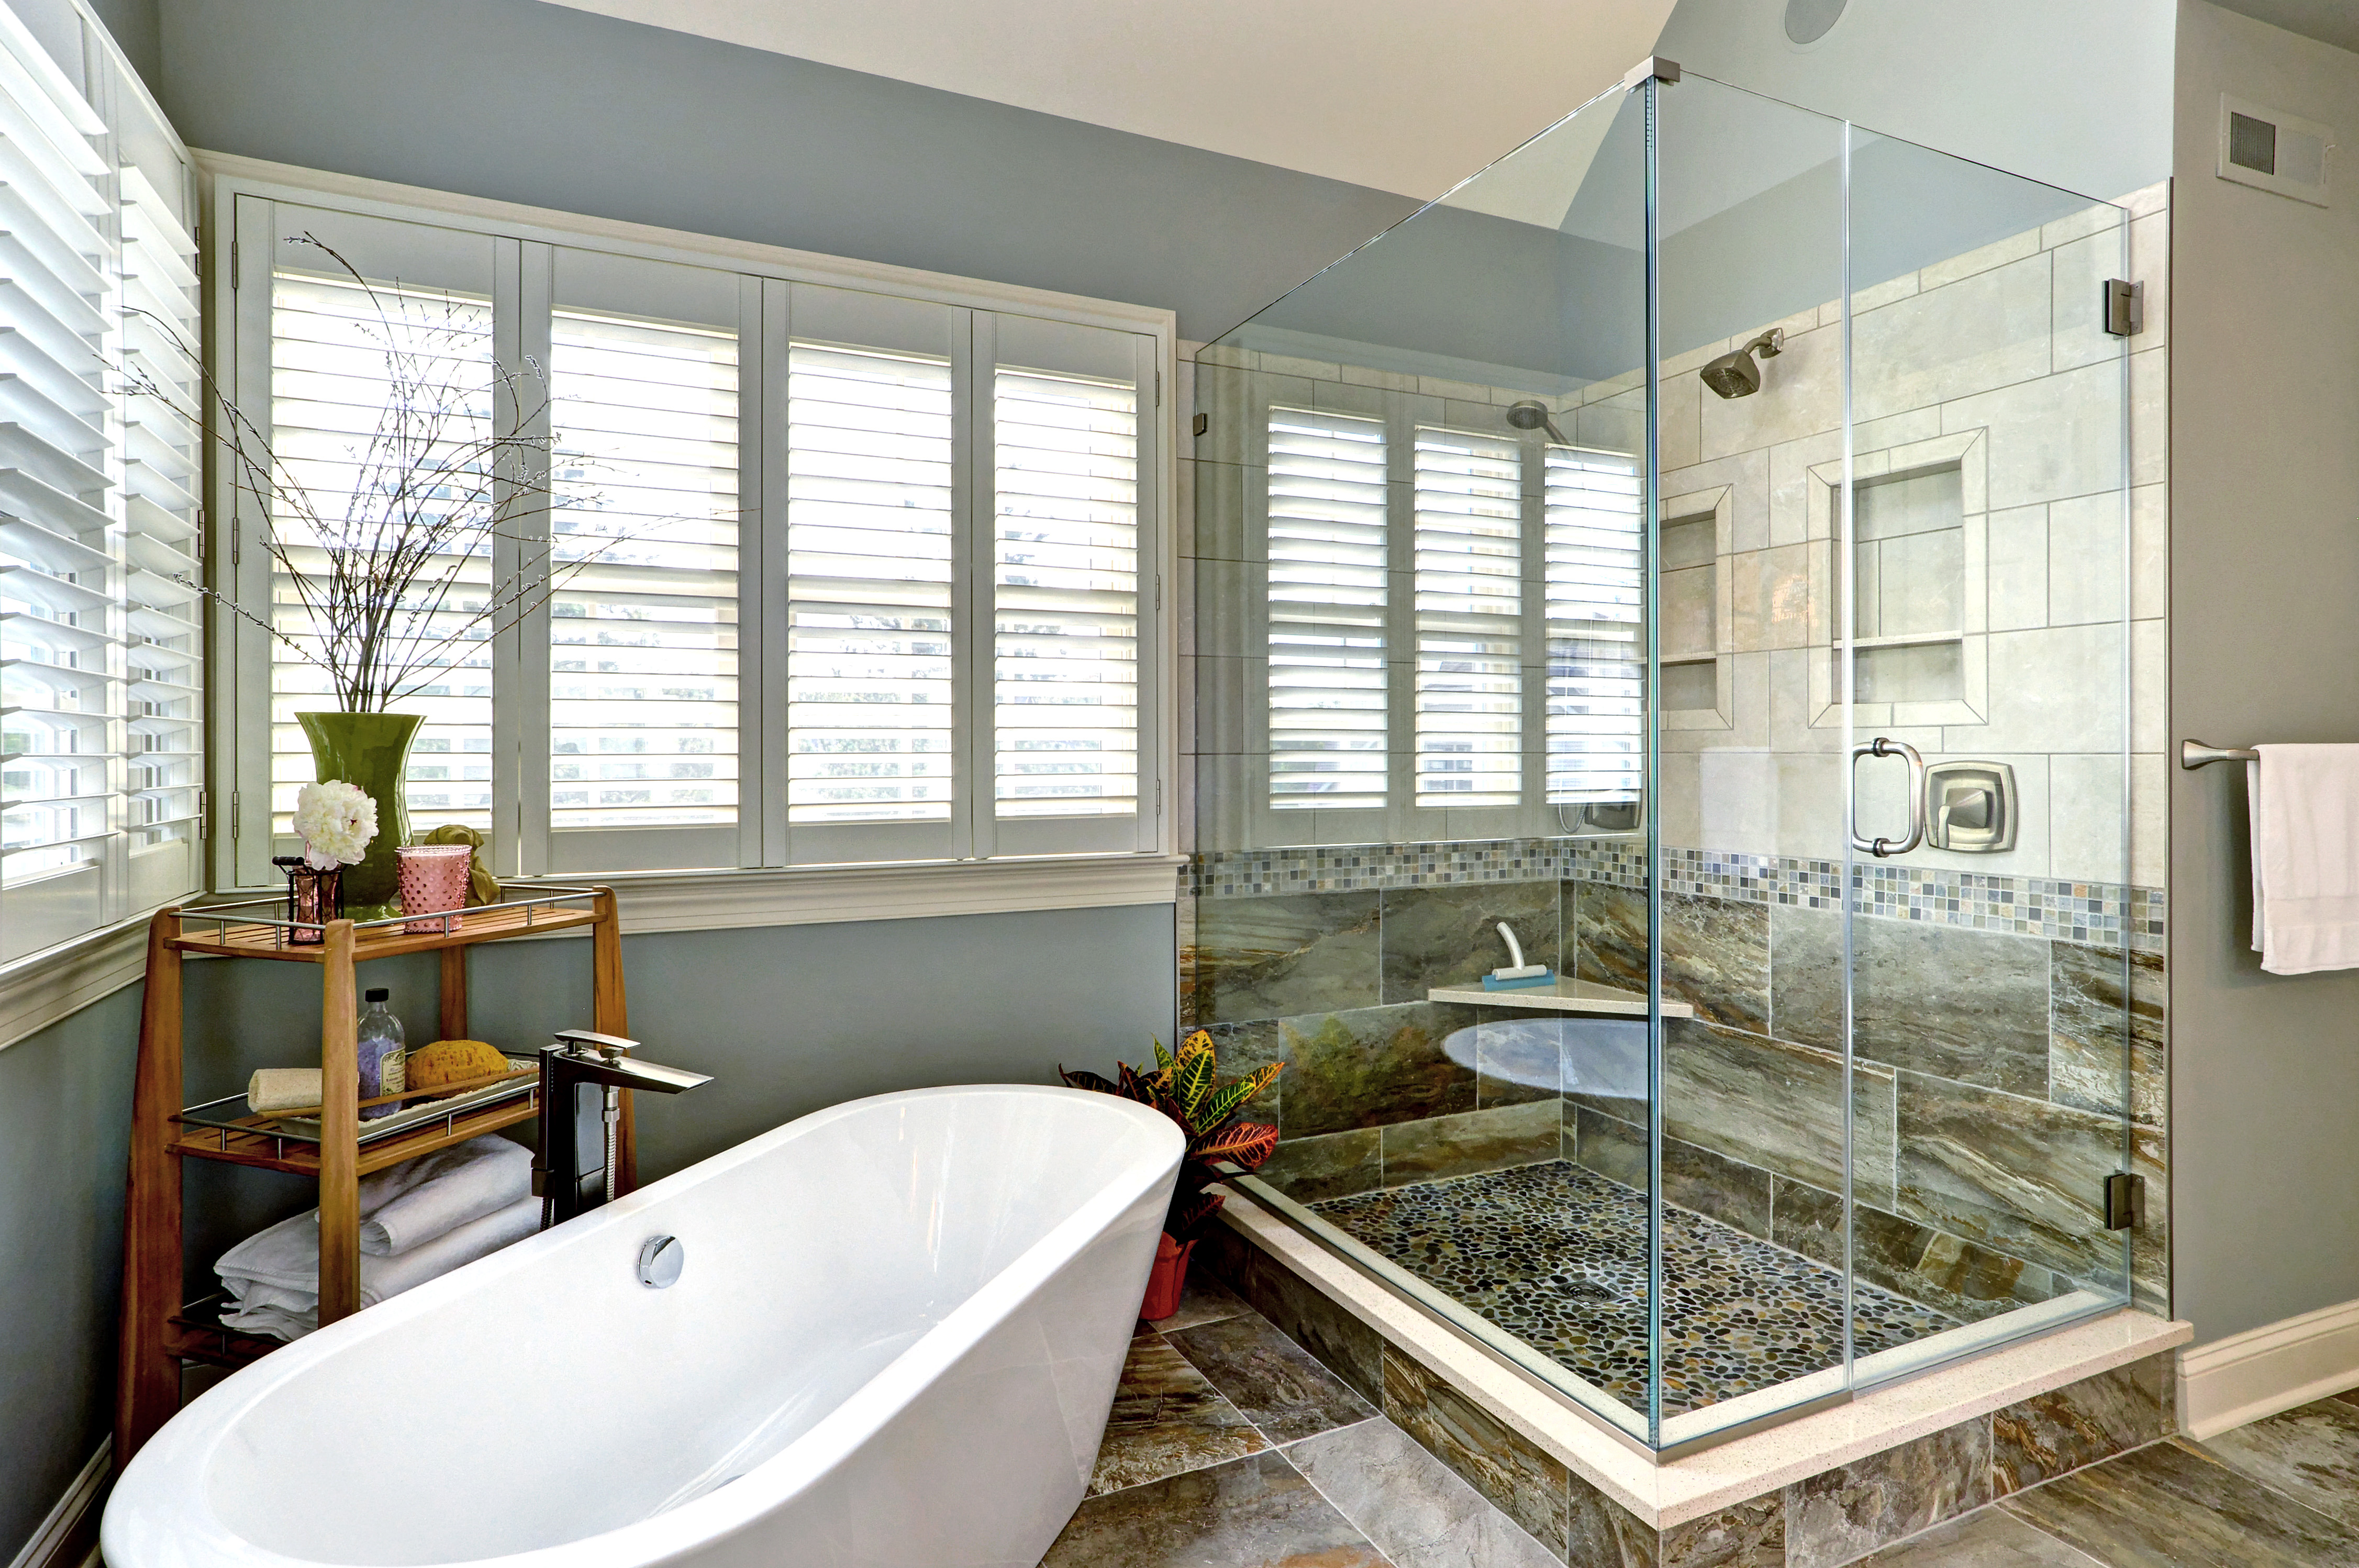 Remodeling Your Bathroom surviving your bathroom remodel - | gehman design remodeling | www